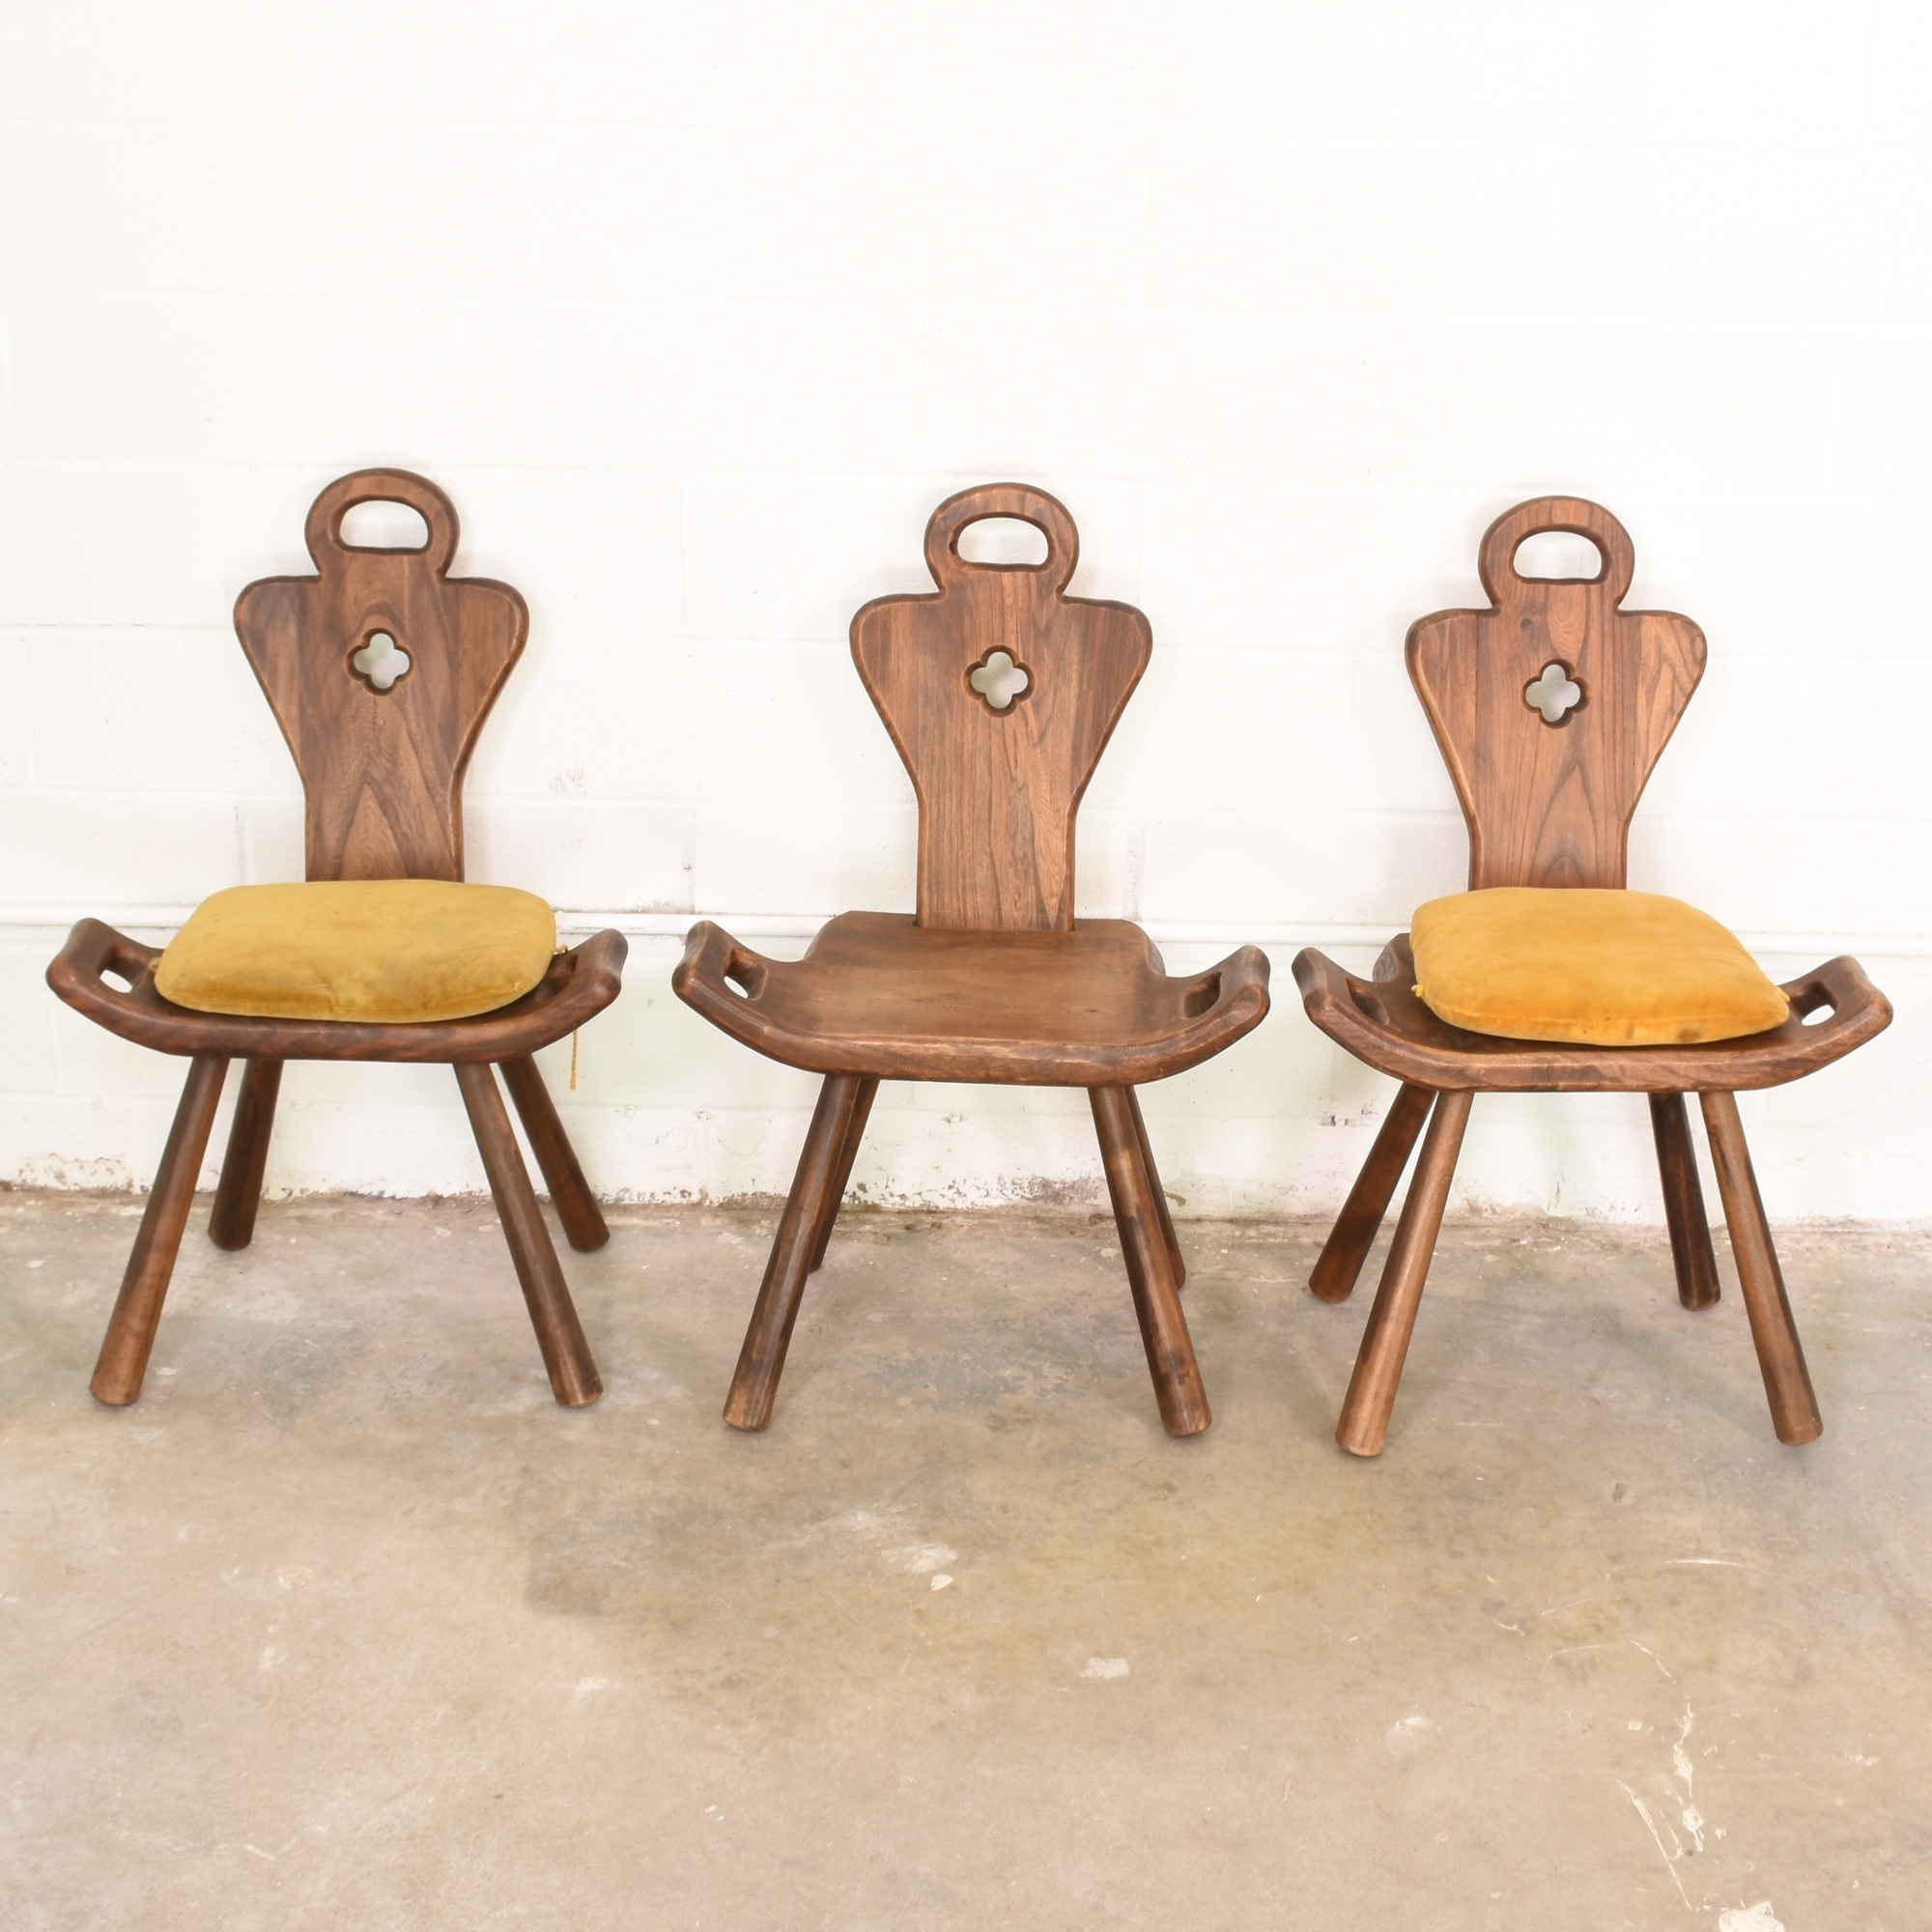 Antique birthing chair - Set Of 3 Primitive Antique Birthing Chairs From Sp Loveseat Vintage Furniture San Diego Los Angeles